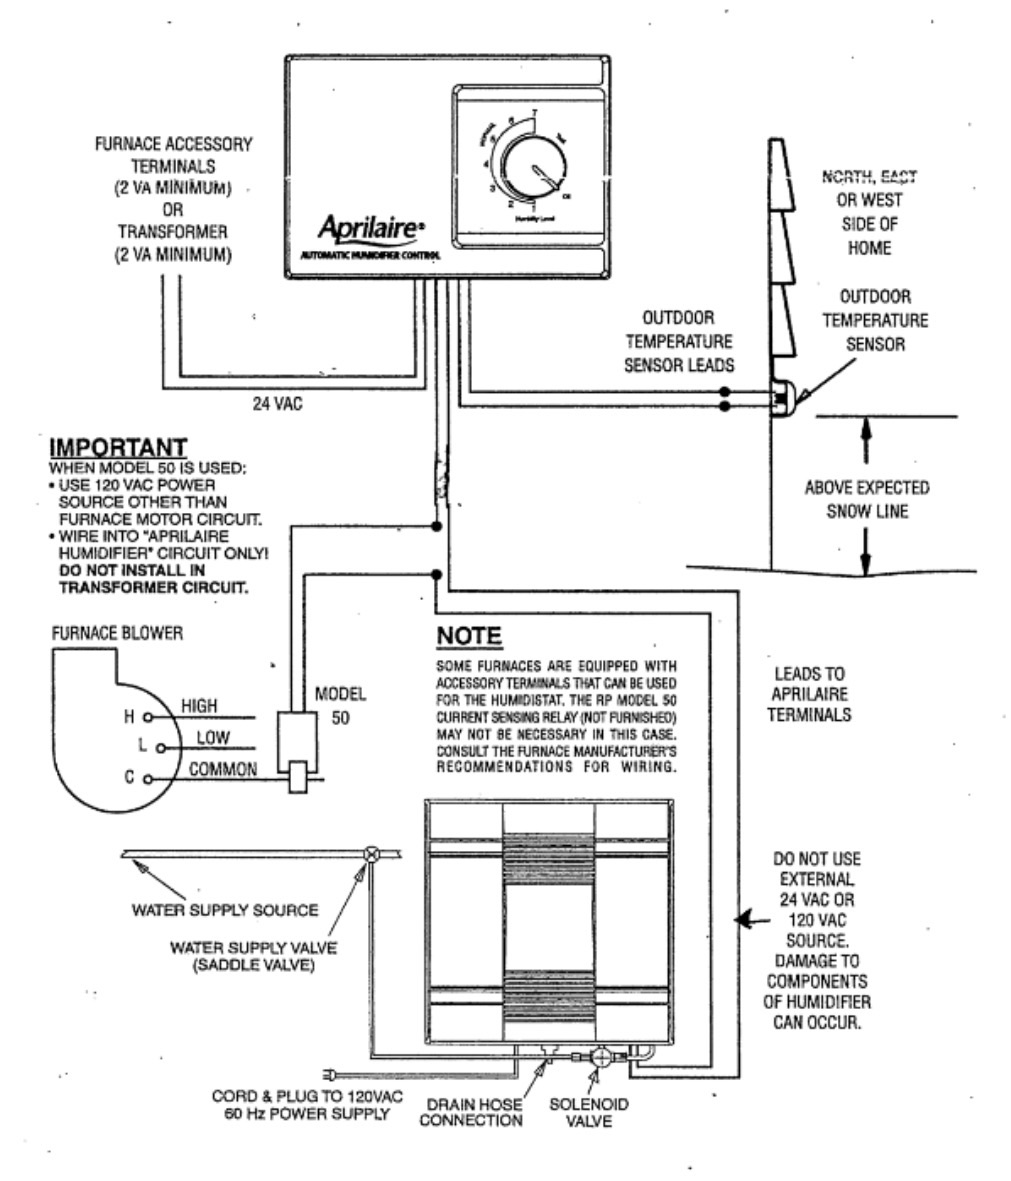 aprilaire 760 wiring diagram 2007 kenworth w900 stereo heating - 700 humidifier to york tg9* furnace home improvement stack exchange